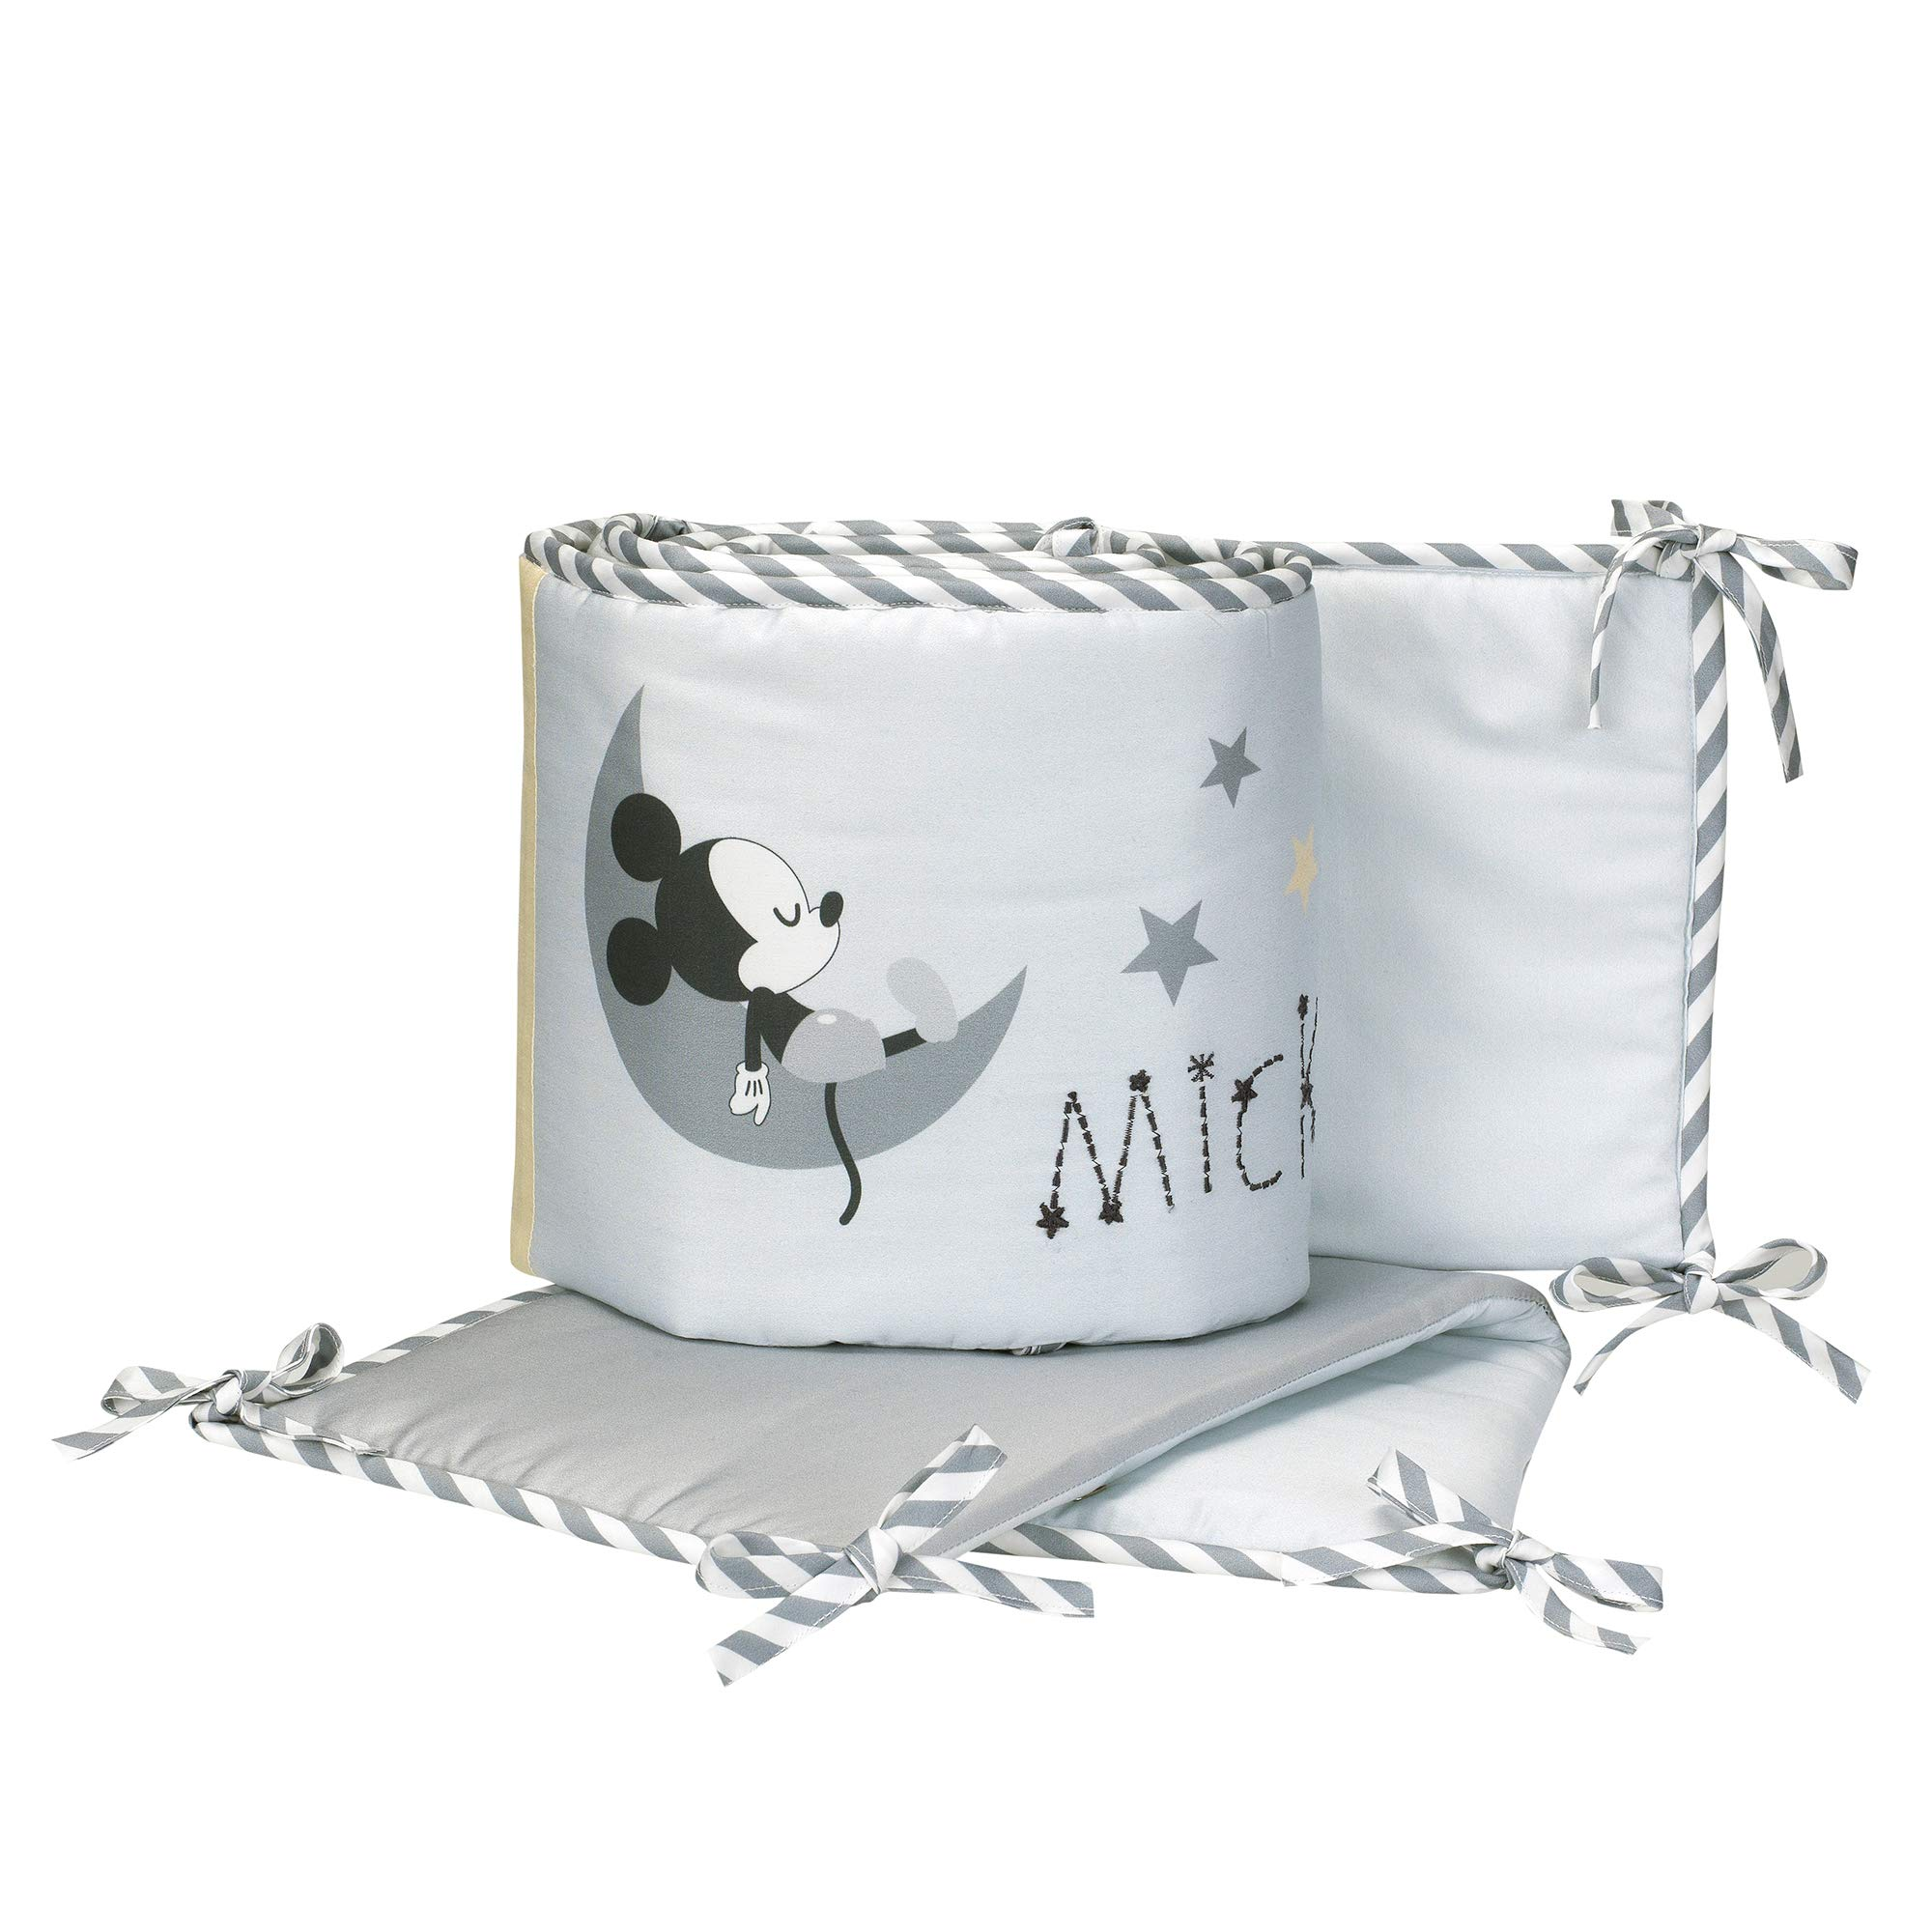 Lambs & Ivy Disney Baby Mickey Mouse 4-Piece Crib Bumper, Gay/White by Lambs & Ivy